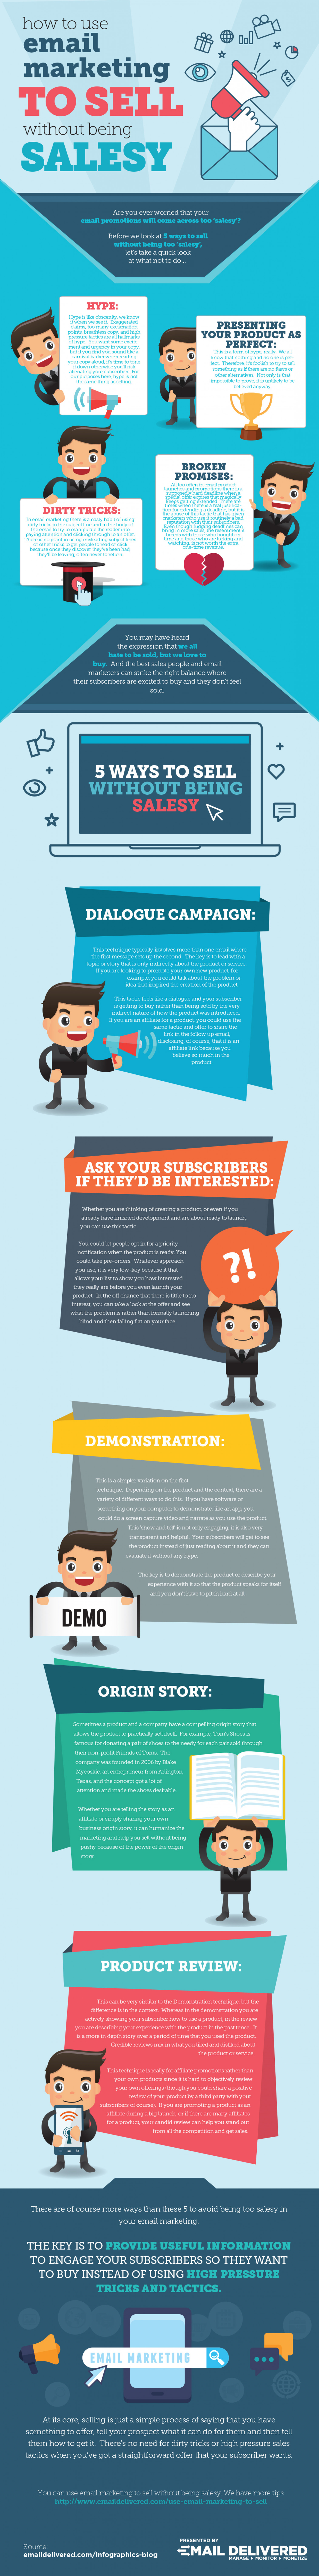 How to Use Email Marketing to Sell Without Being Salesy Infographic